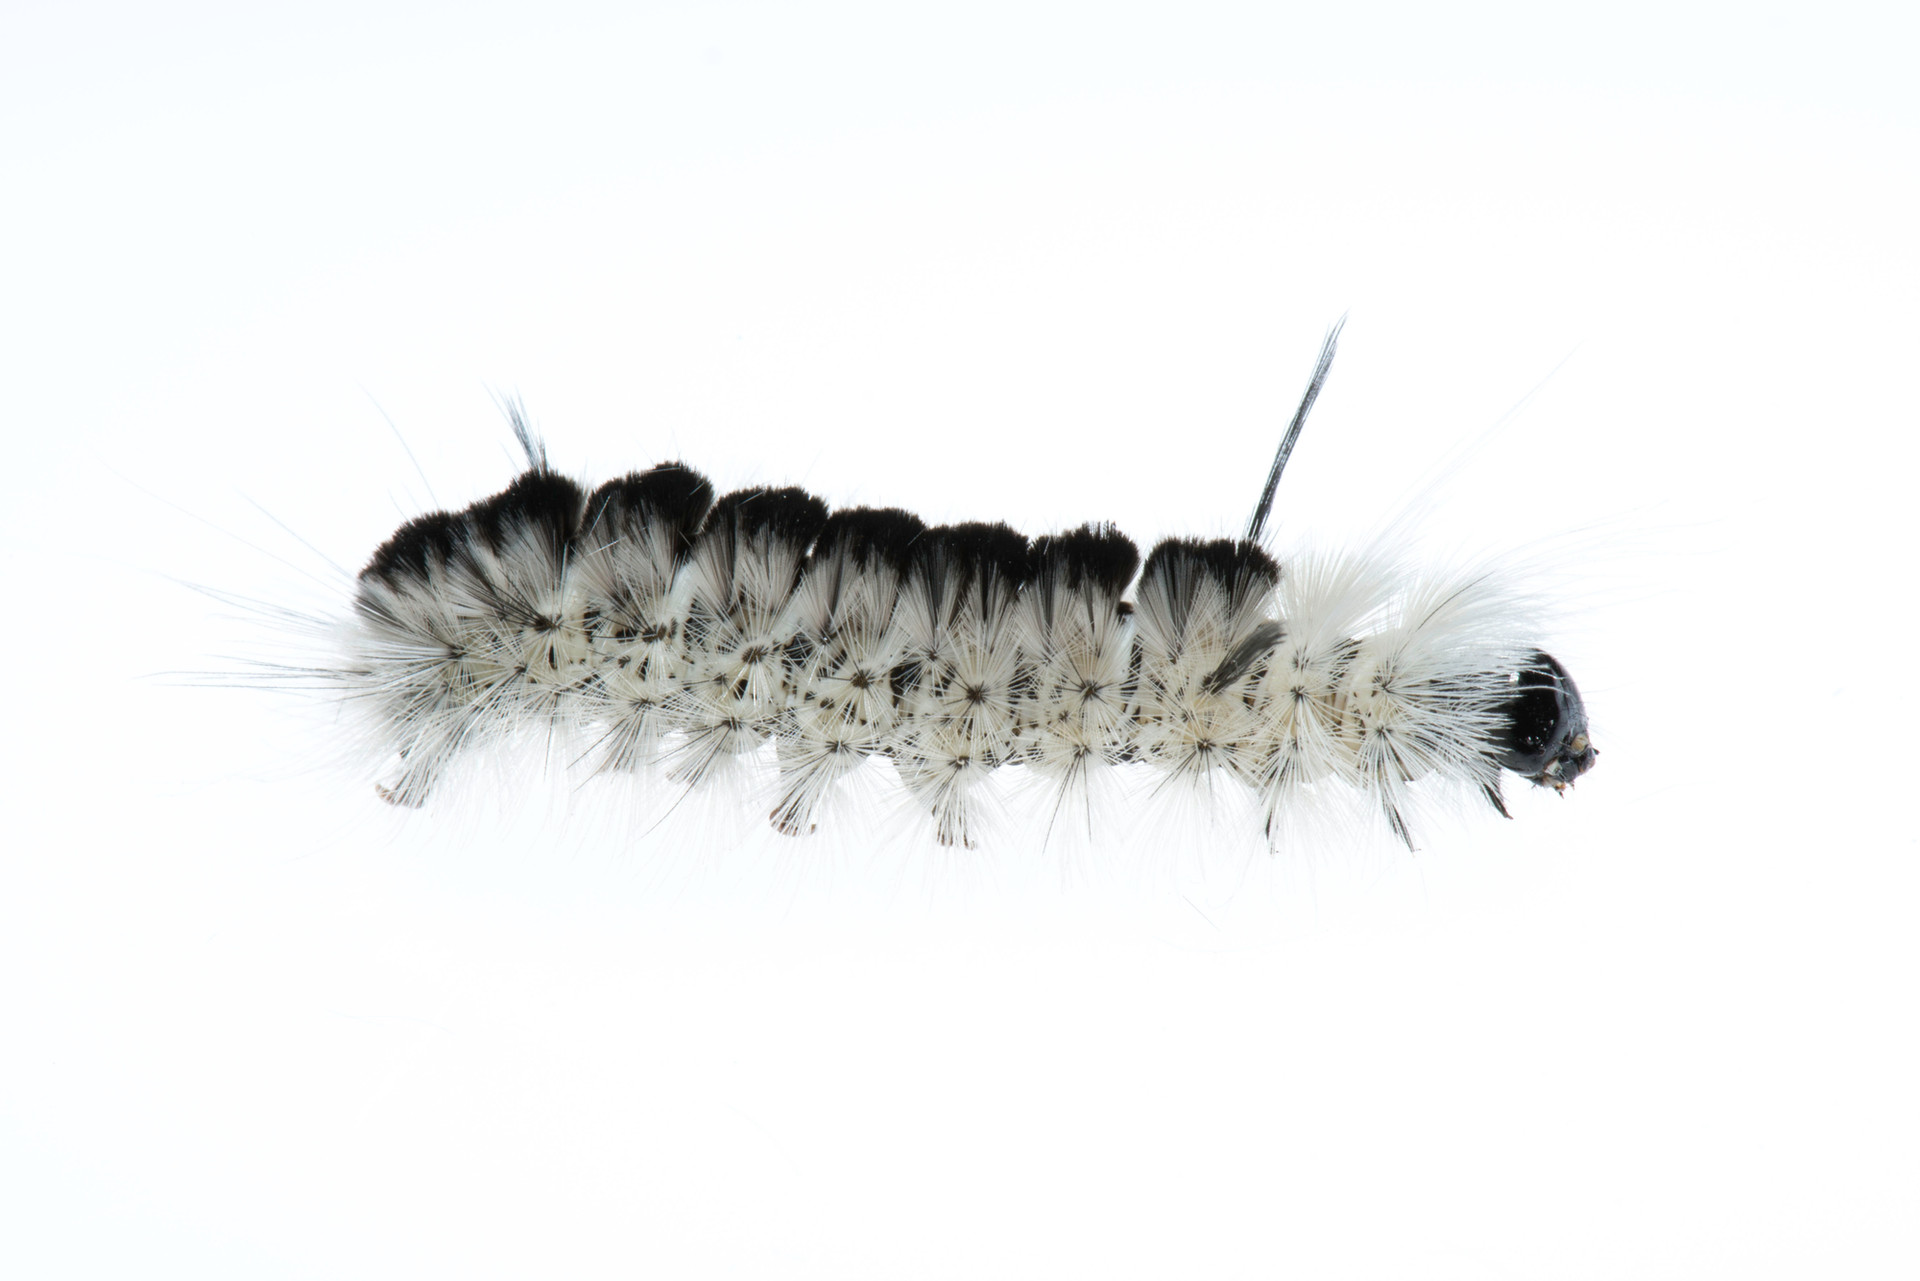 Image of a caterpillar from Mendon Ponds in Rochester NY photographed with the field studio technique. Field studio is a photographic technique that creates a studio style image without removing the specimen from it's natural habitat.